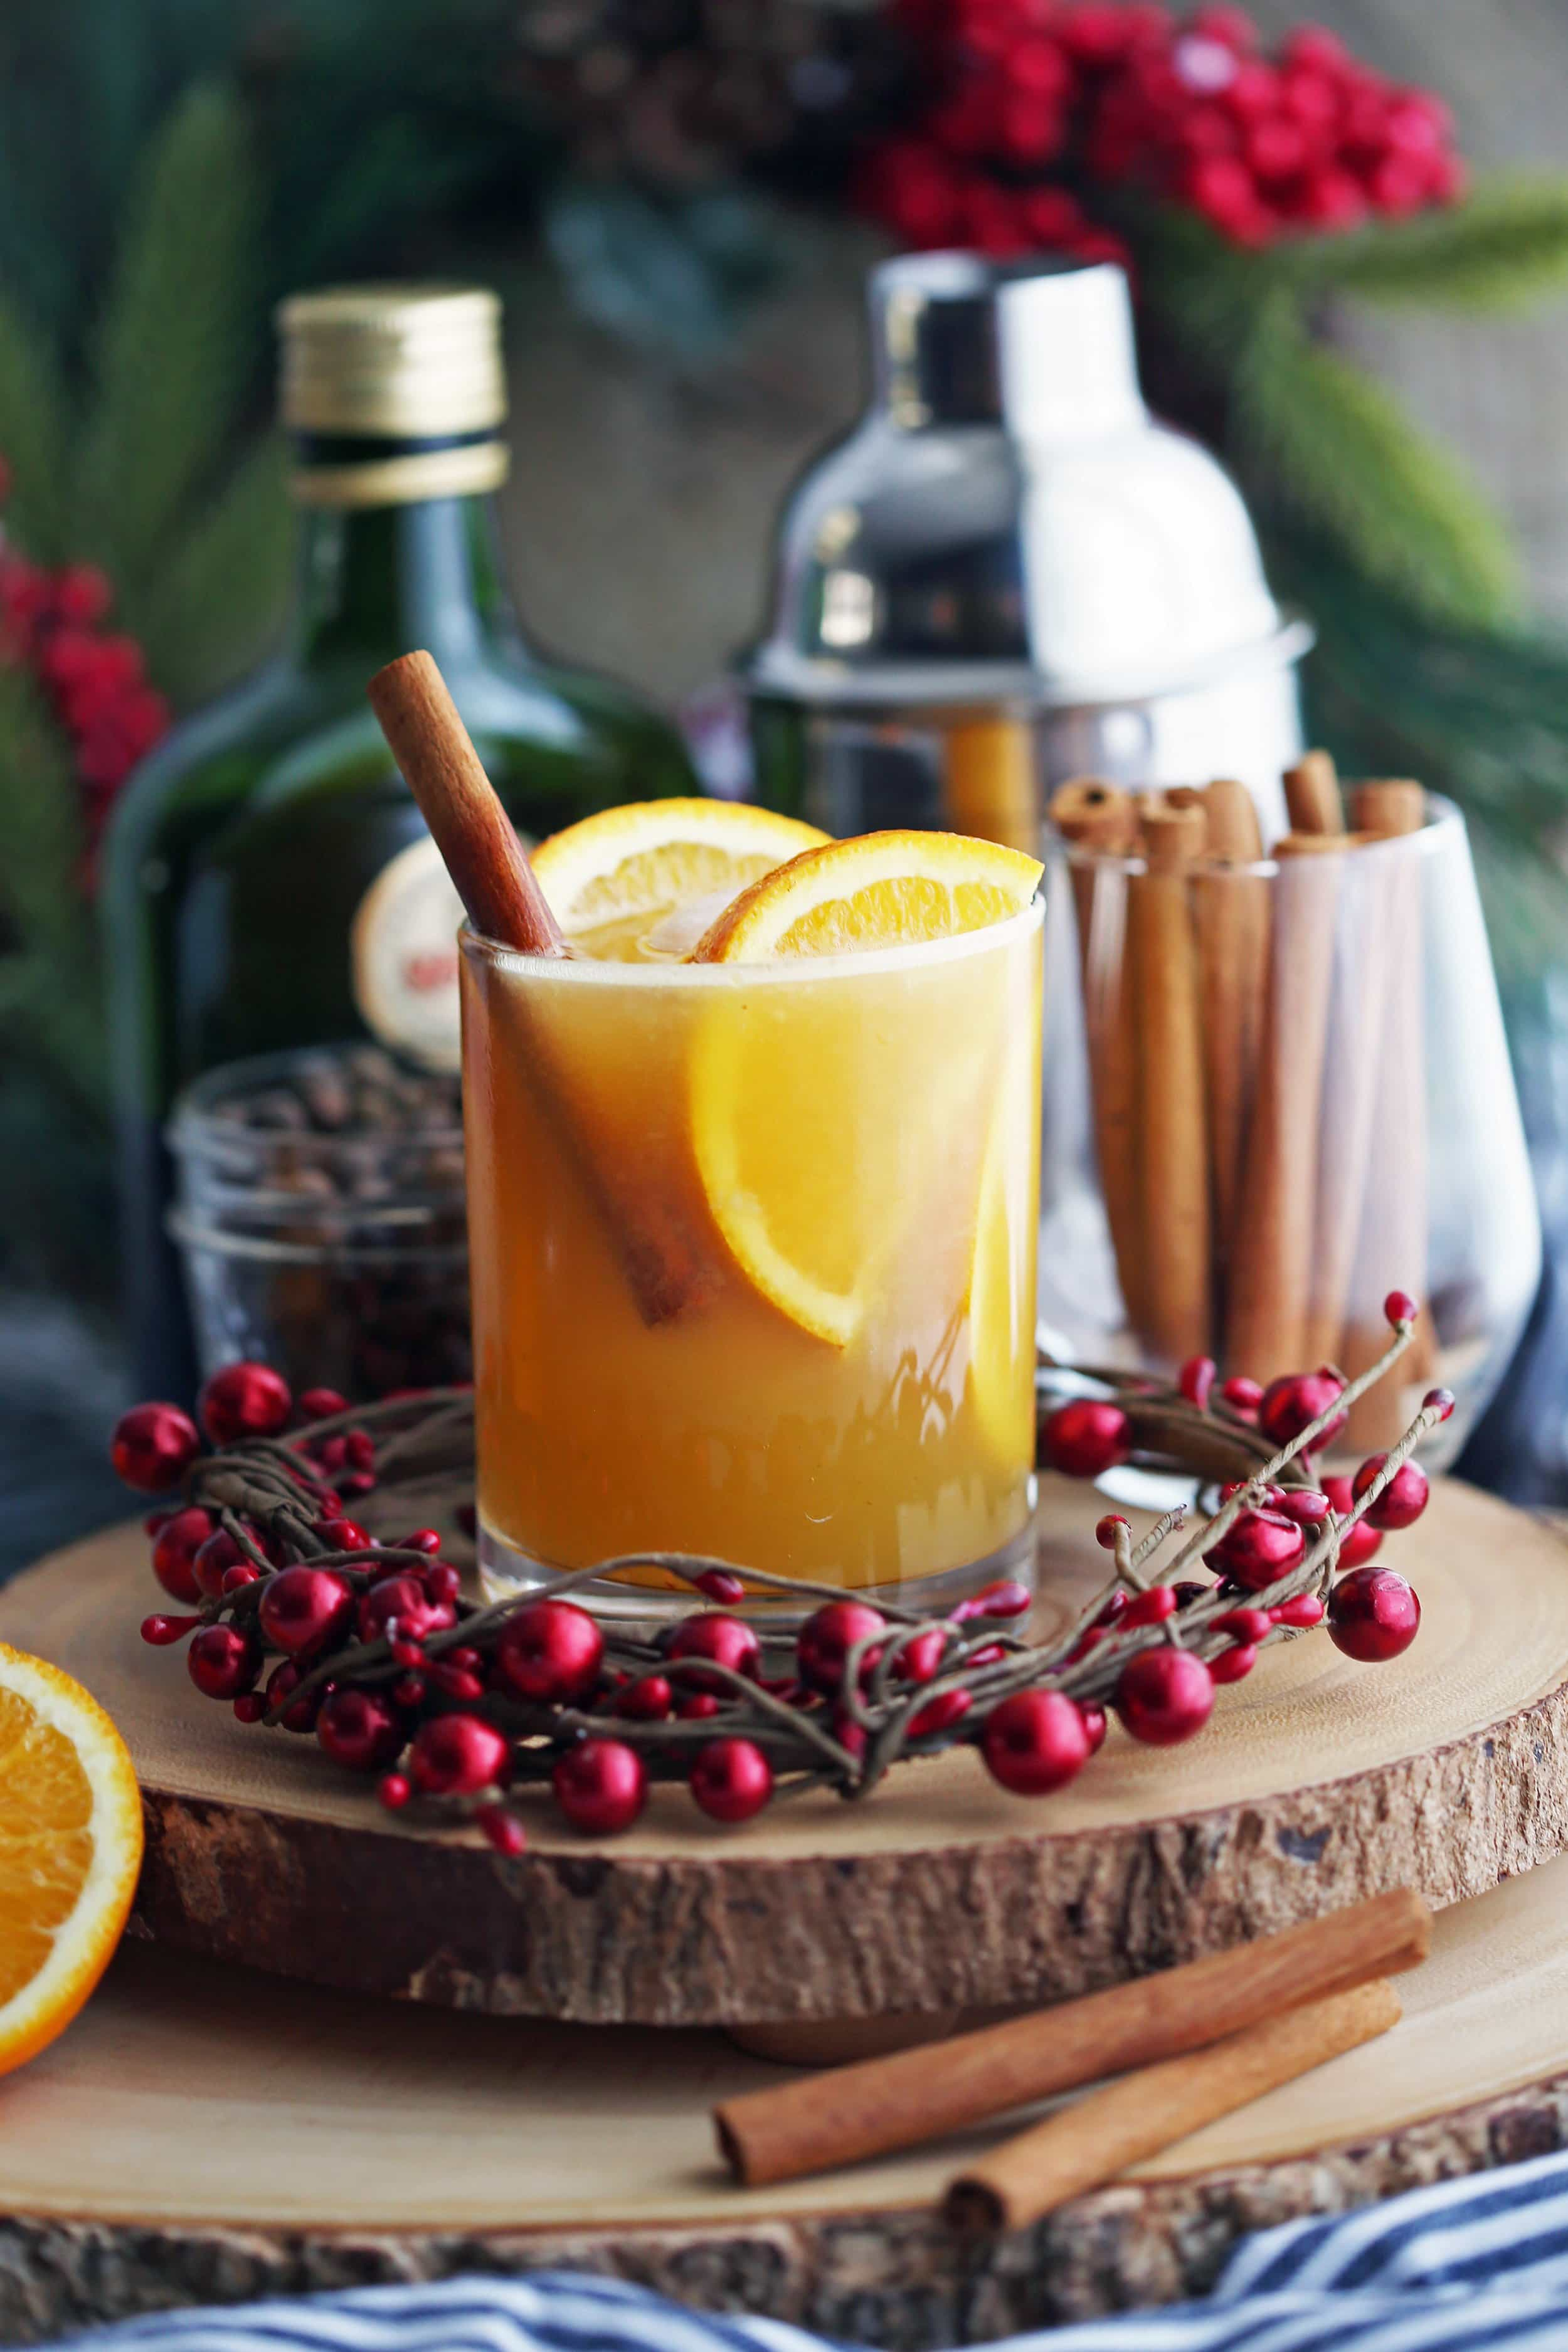 A wooden platter containing a glass of spiced orange brandy spritzer cocktail with orange slices and a cinnamon stick.